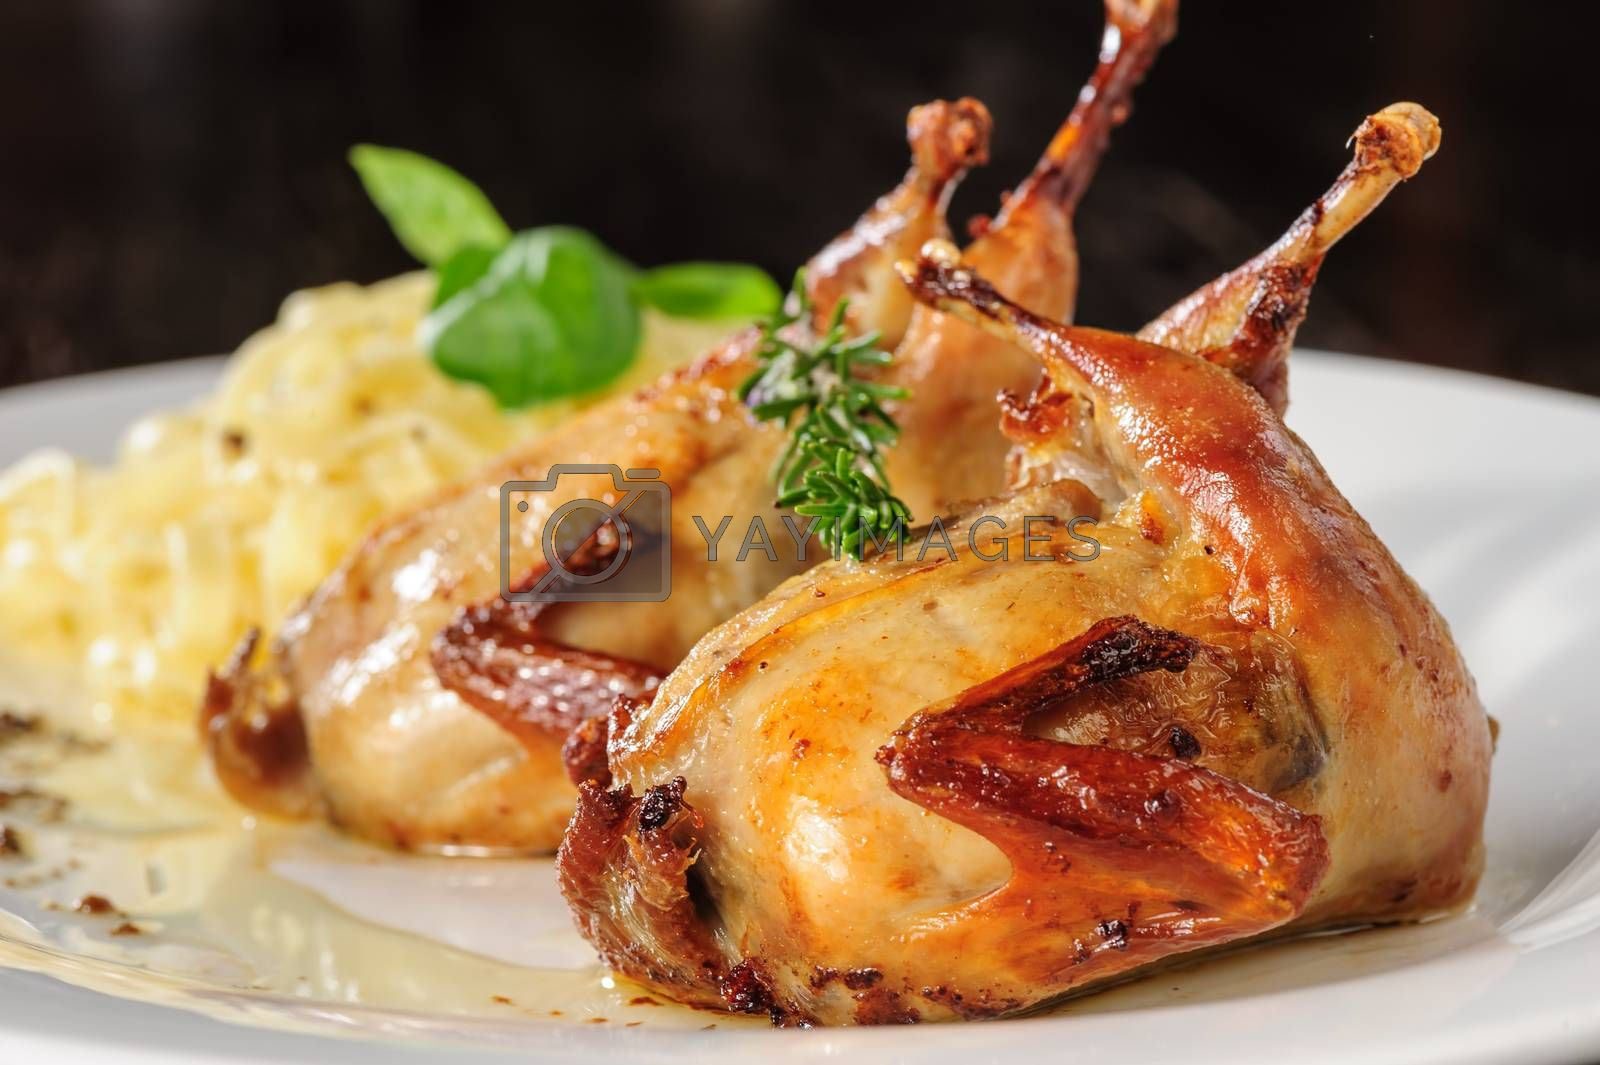 Roasted or fried whole quails with herbs and tagliatelle at white plate on wooden table